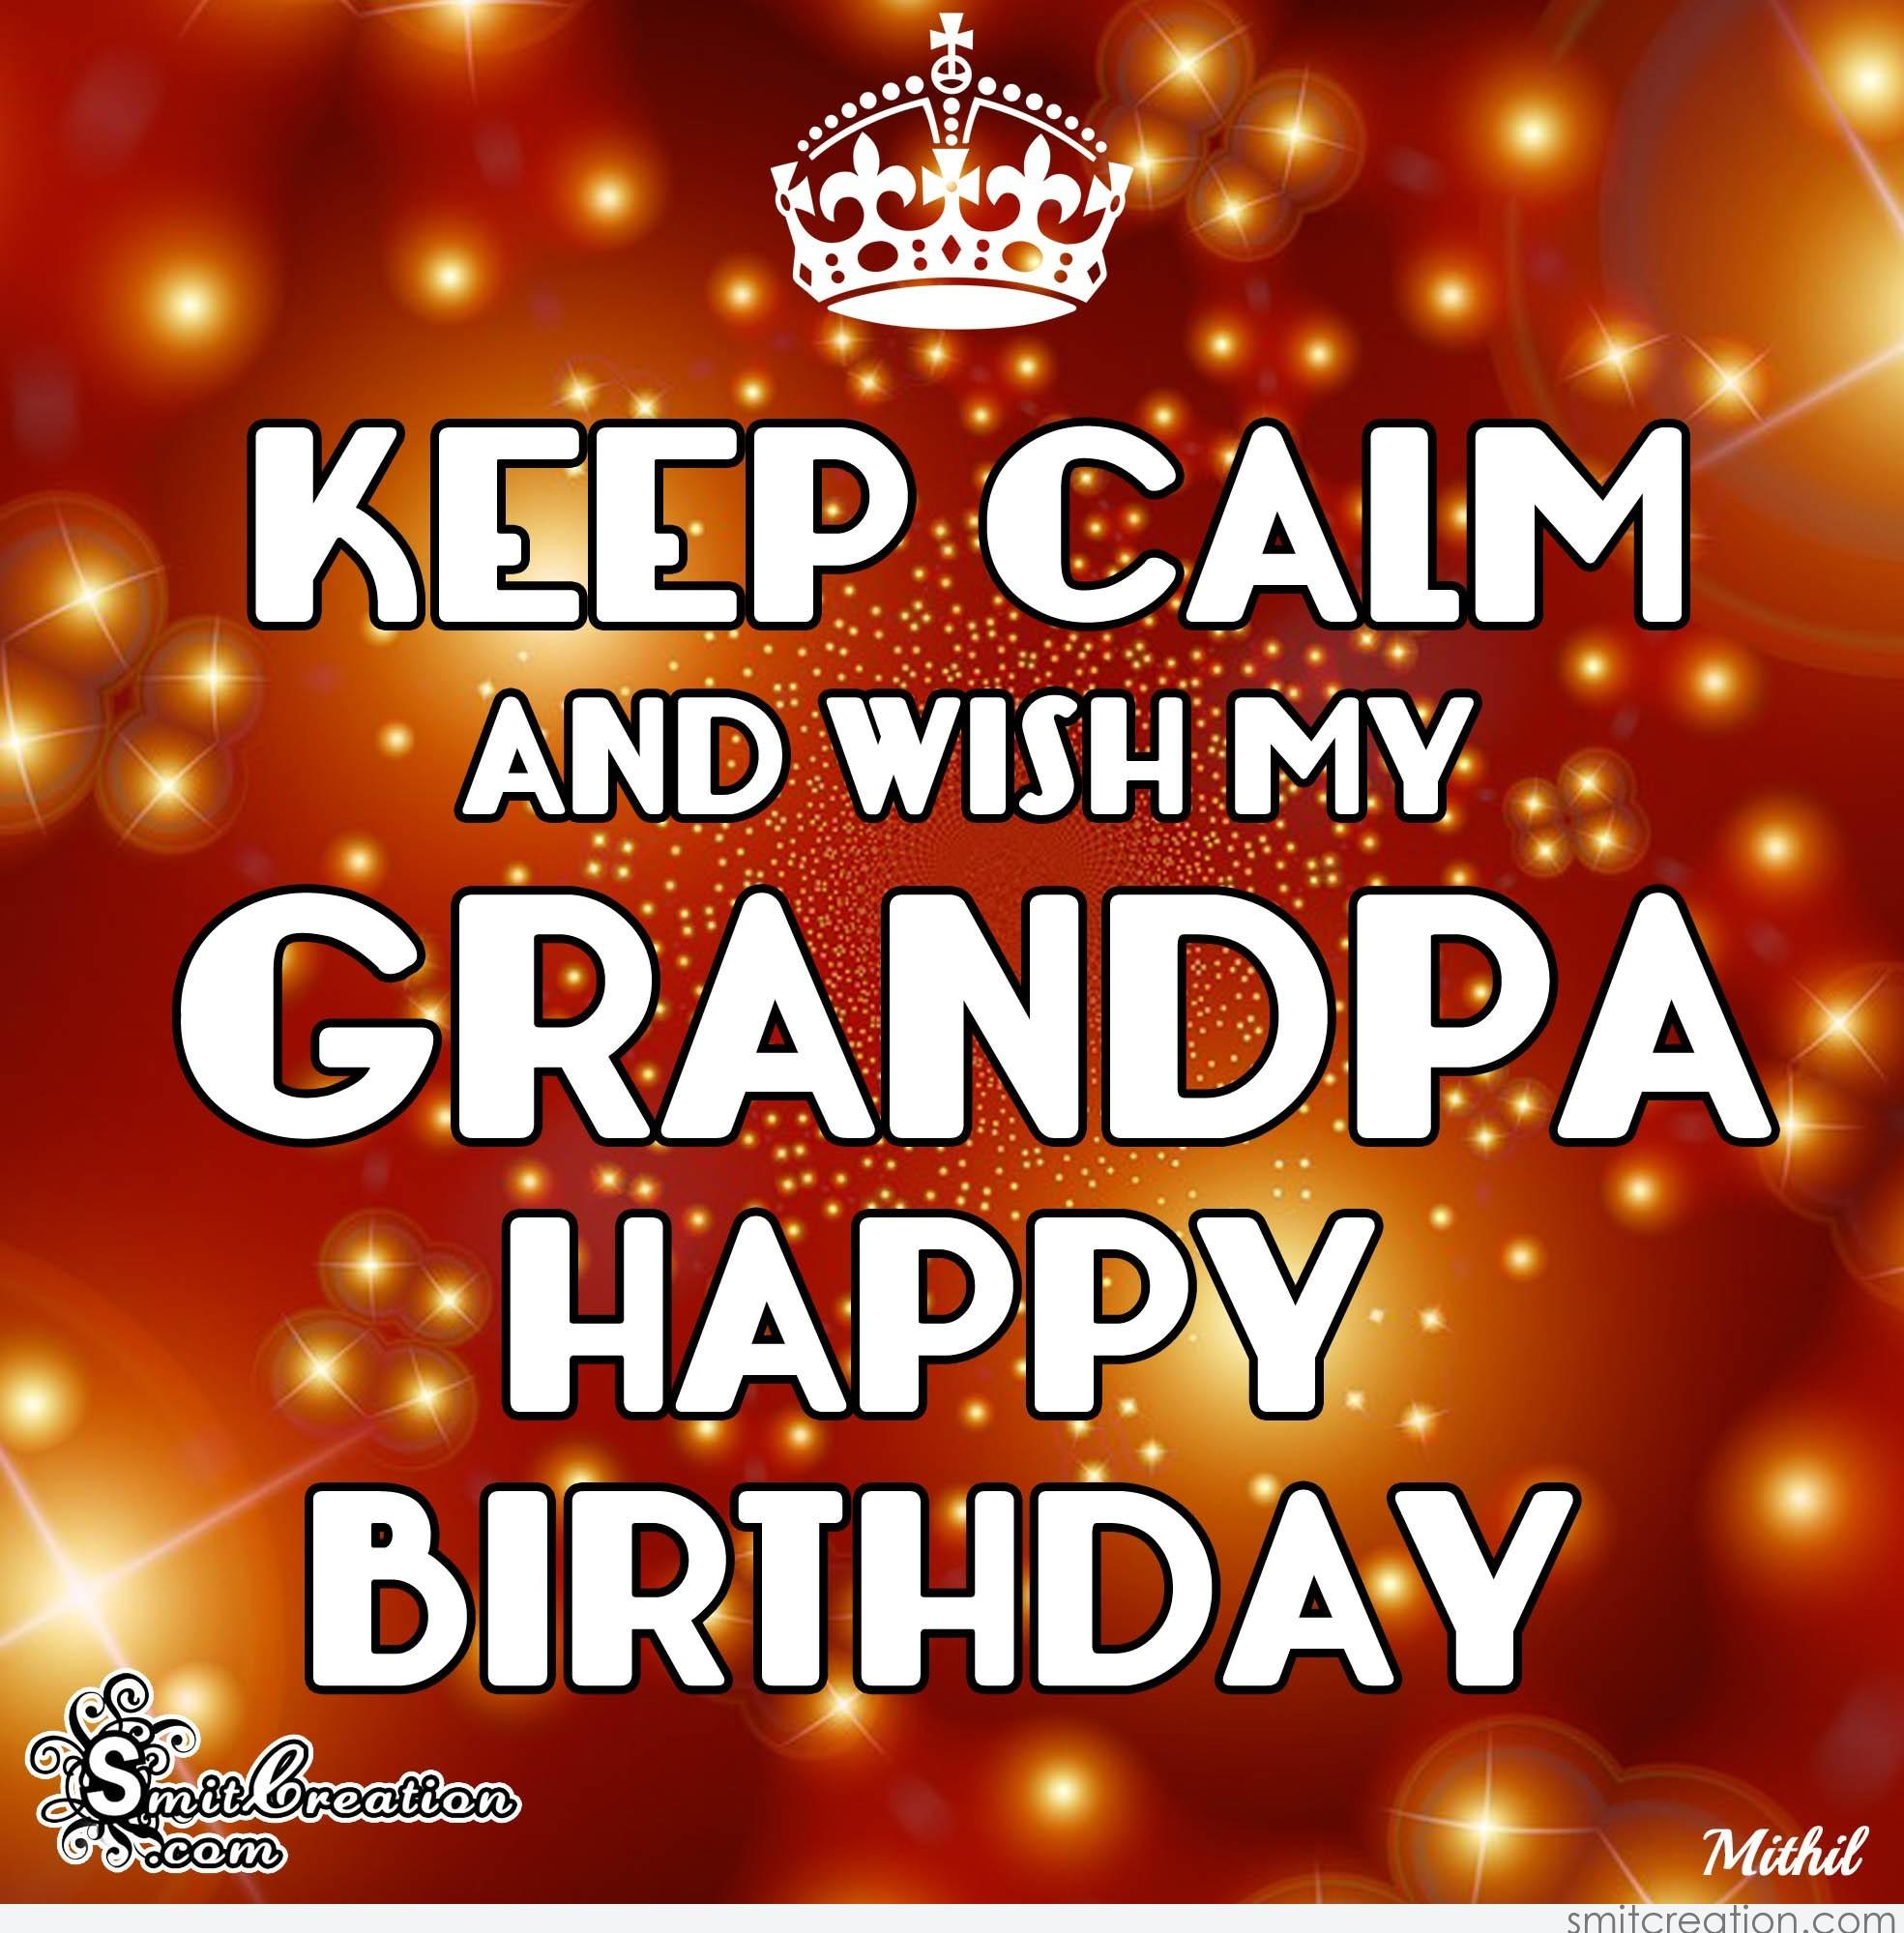 Birthday Wishes For Grandpa Pictures And Graphics